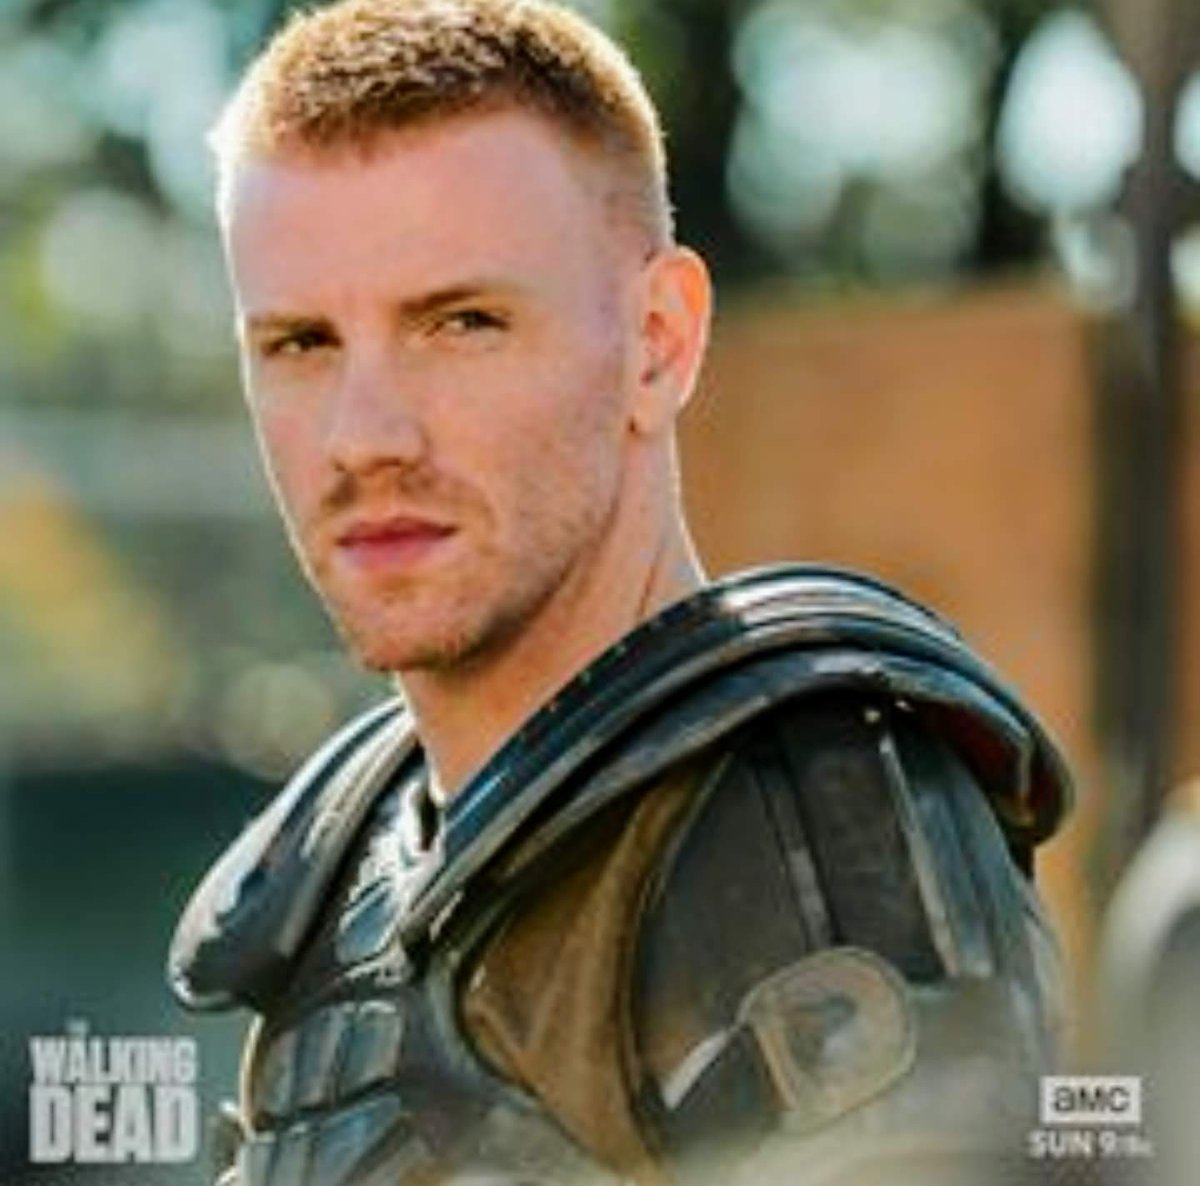 daniel newman forbesdaniel newman tumblr, daniel newman in endgame, daniel newman forbes, daniel newman walking dead, daniel newman wikipedia, daniel newman twitter, daniel newman vampire diaries, daniel newman actor, daniel newman facebook, daniel newman durham, daniel newman instagram, daniel newman british, daniel newman the great gatsby, daniel newman the walking dead, daniel newman robin hood, daniel newman homeland, daniel newman imdb, daniel newman endgame, daniel newman md, daniel newman wulf